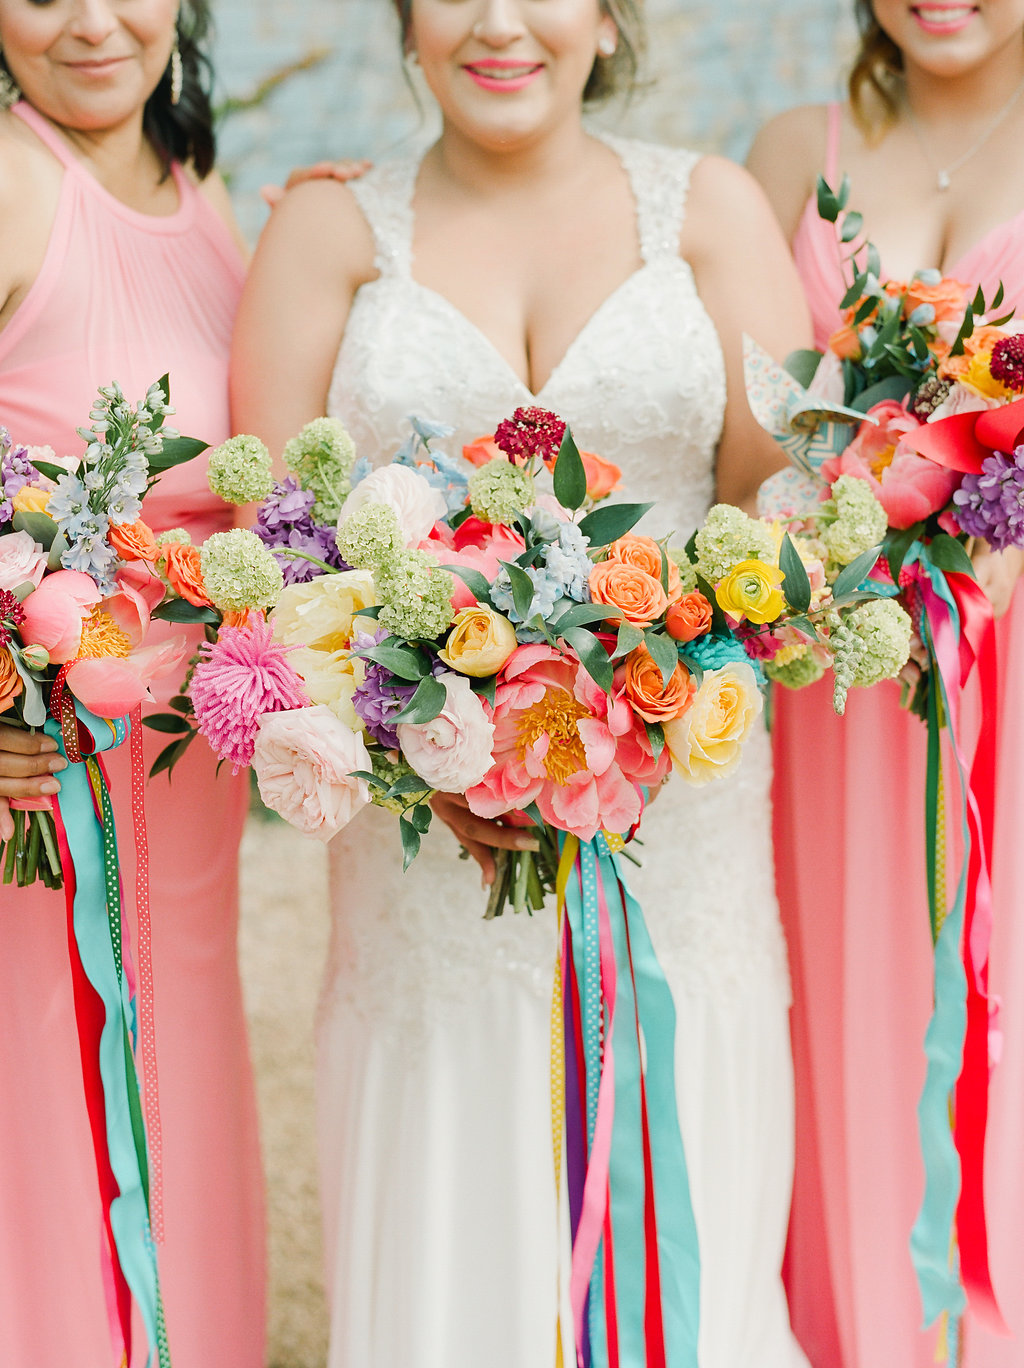 colorful wedding bouquets with bright ribbons - http://ruffledblog.com/modern-playful-texas-carnival-wedding